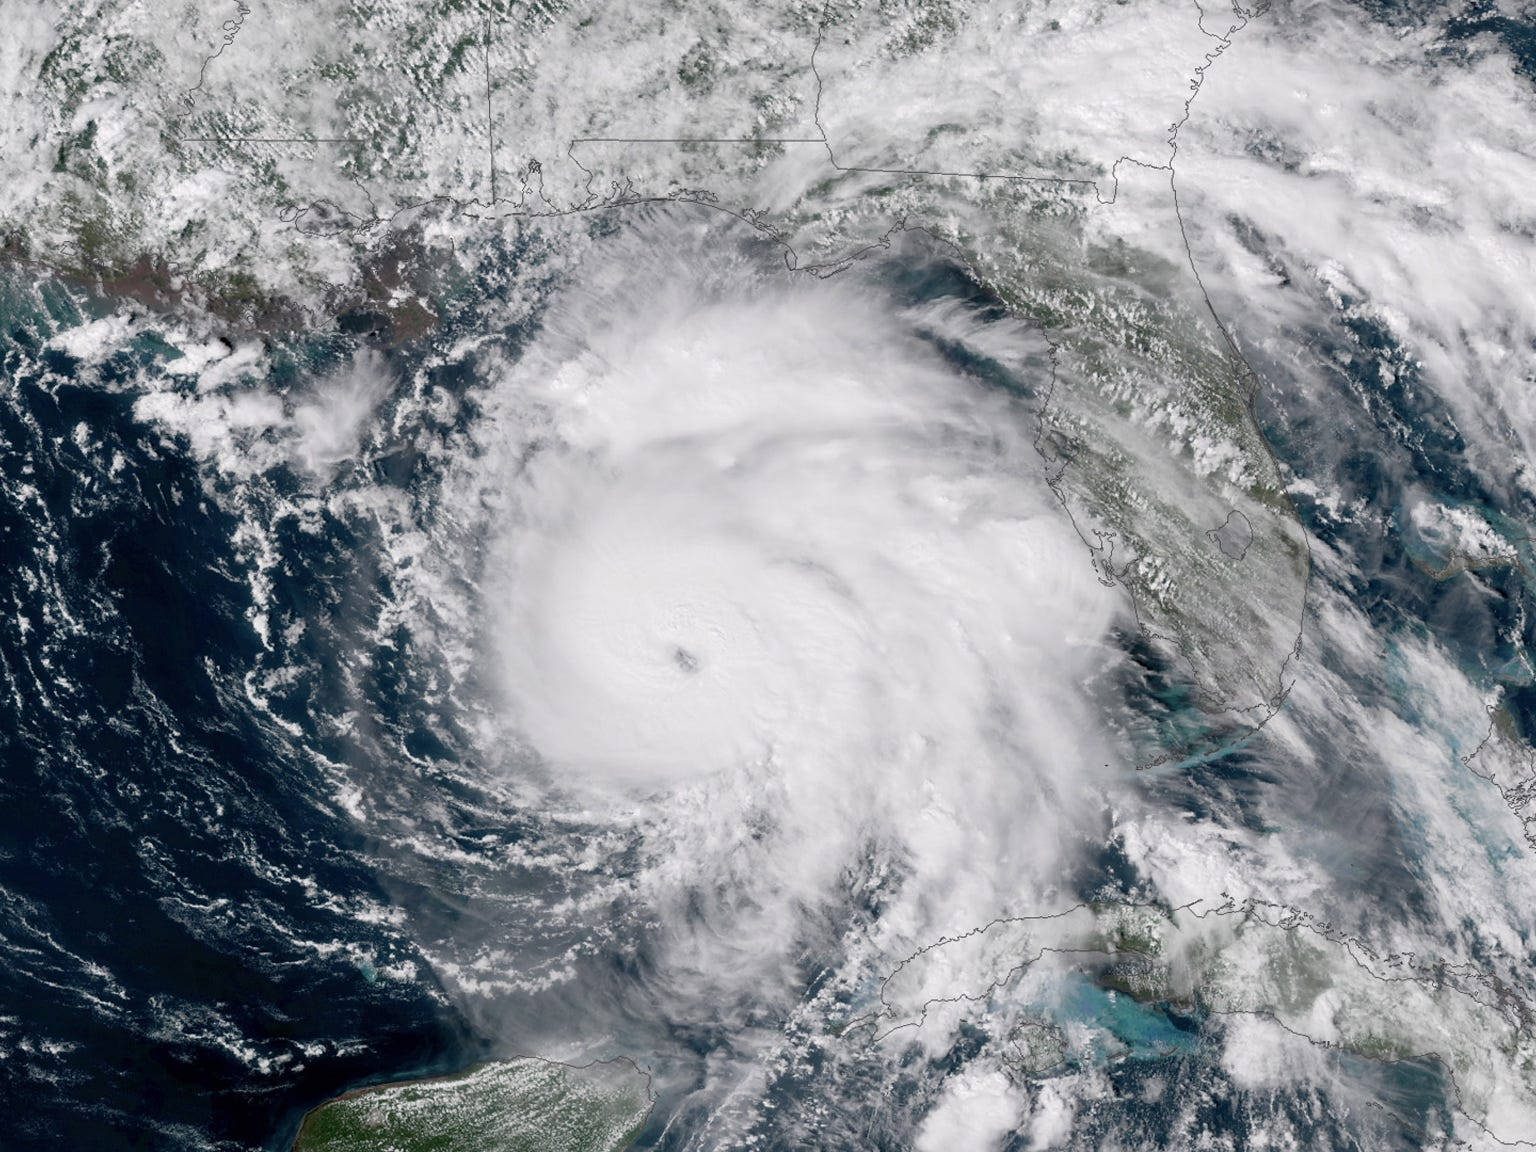 epa07082394 A handout photo made available by the US National Oceanic and Atmospheric Administration (NOAA) on 09 October 2018 shows a Geo-Color satellite image of hurricane Michael as it moves north-northwest over the southeastern Gulf of Mexico. The latest forecast from the National Hurricane Center (NHC) shows the center of Michael moving across the eastern Gulf of Mexico through the night of 09 October 2018. On 10 October 2018, the center of the storm is forecast to move inland over the Florida Panhandle, bringing dangerous storm surge, hurricane-force winds and heavy rainfall. More than 370,000 people in Florida have been ordered to evacuate.  EPA-EFE/NOAA / HANDOUT  HANDOUT EDITORIAL USE ONLY/NO SALES